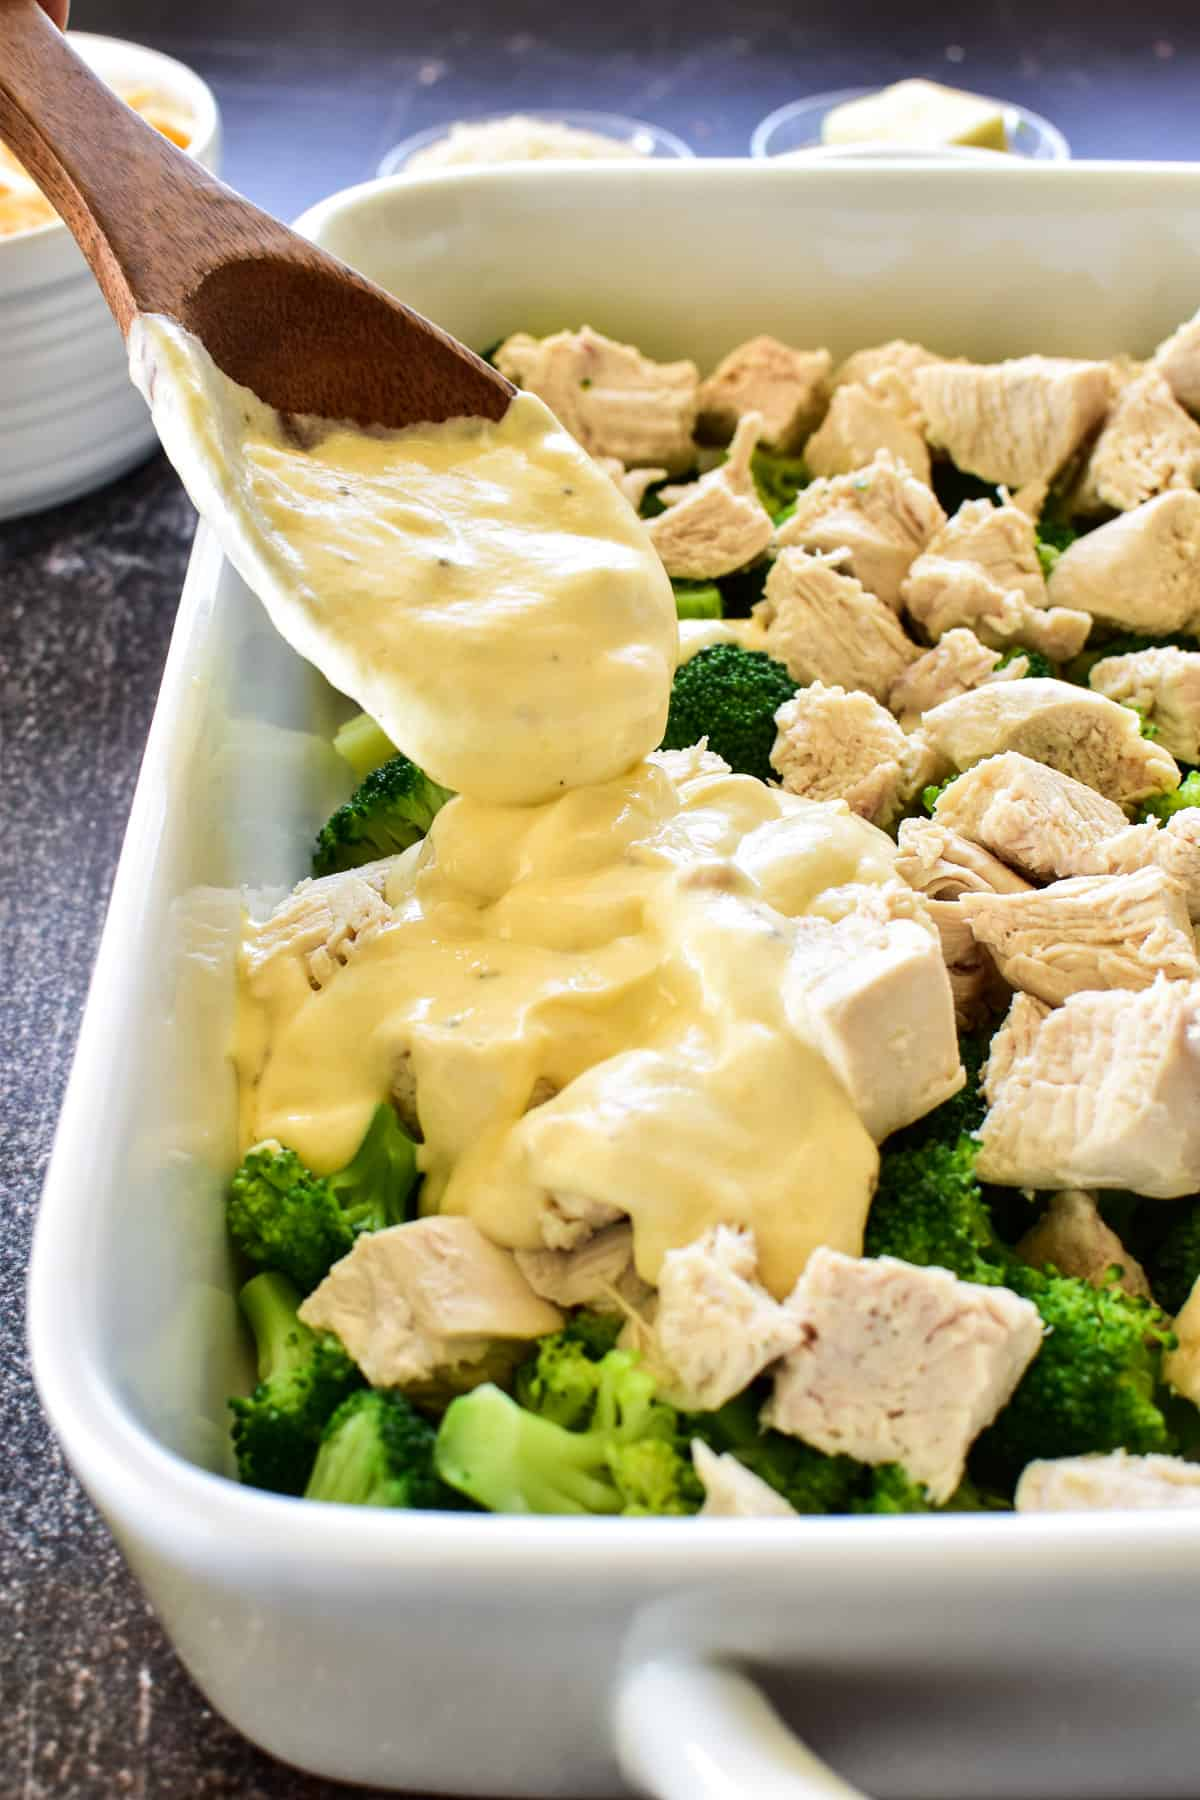 Photo of sauce layer being spooned onto chicken and broccoli